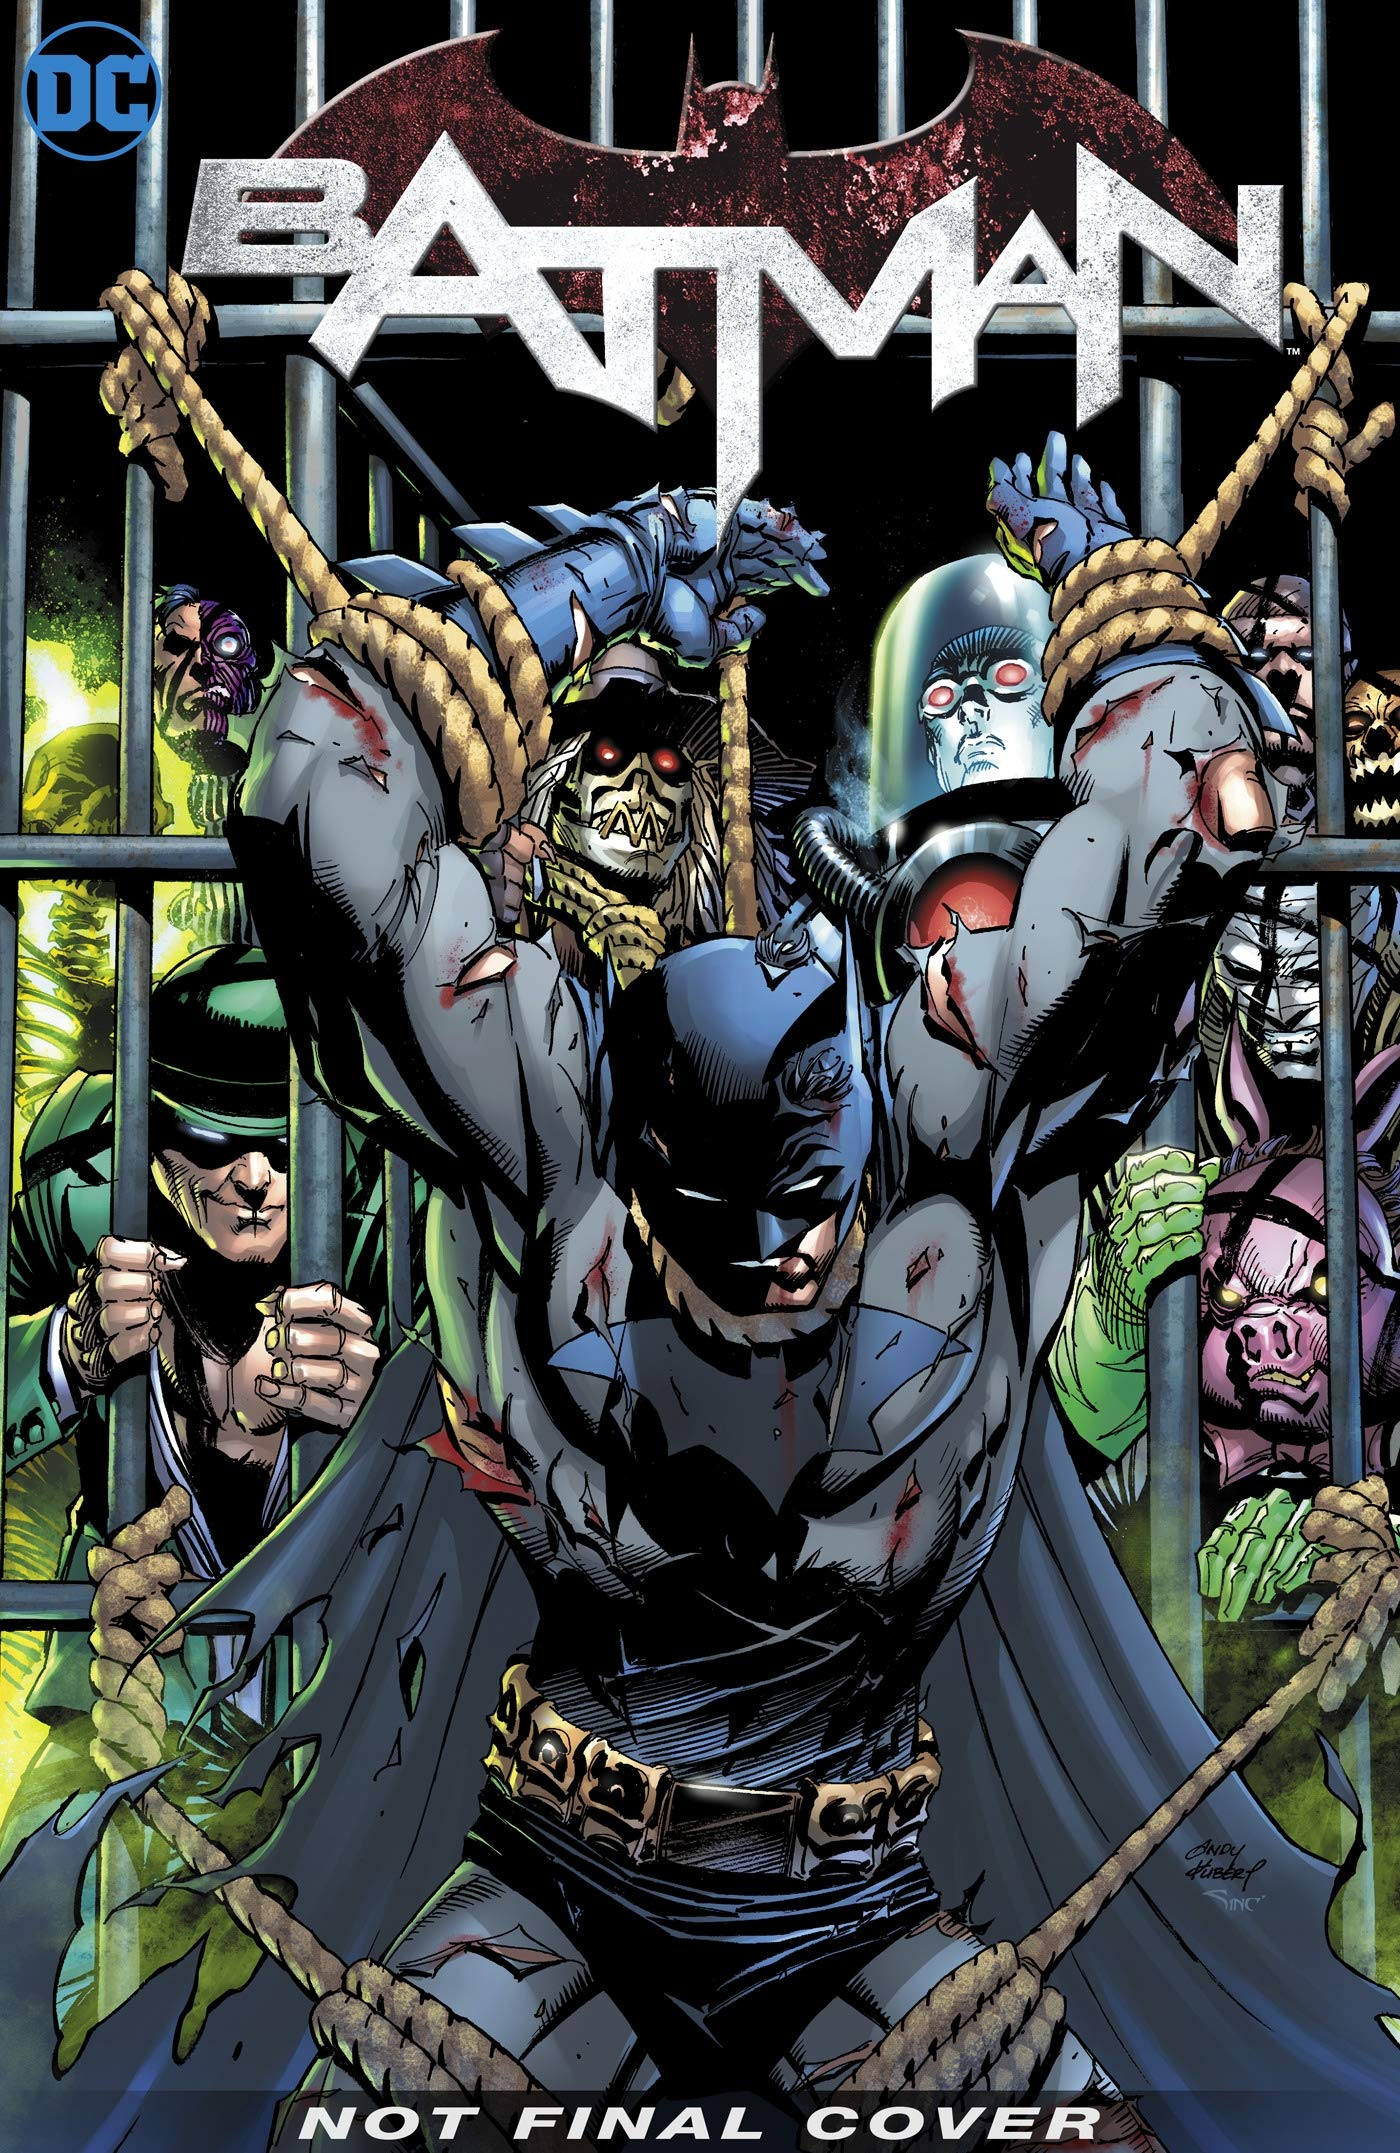 Best Comics 2020.Batman Volume 11 The Fall And The Fallen Amazon Co Uk Tom